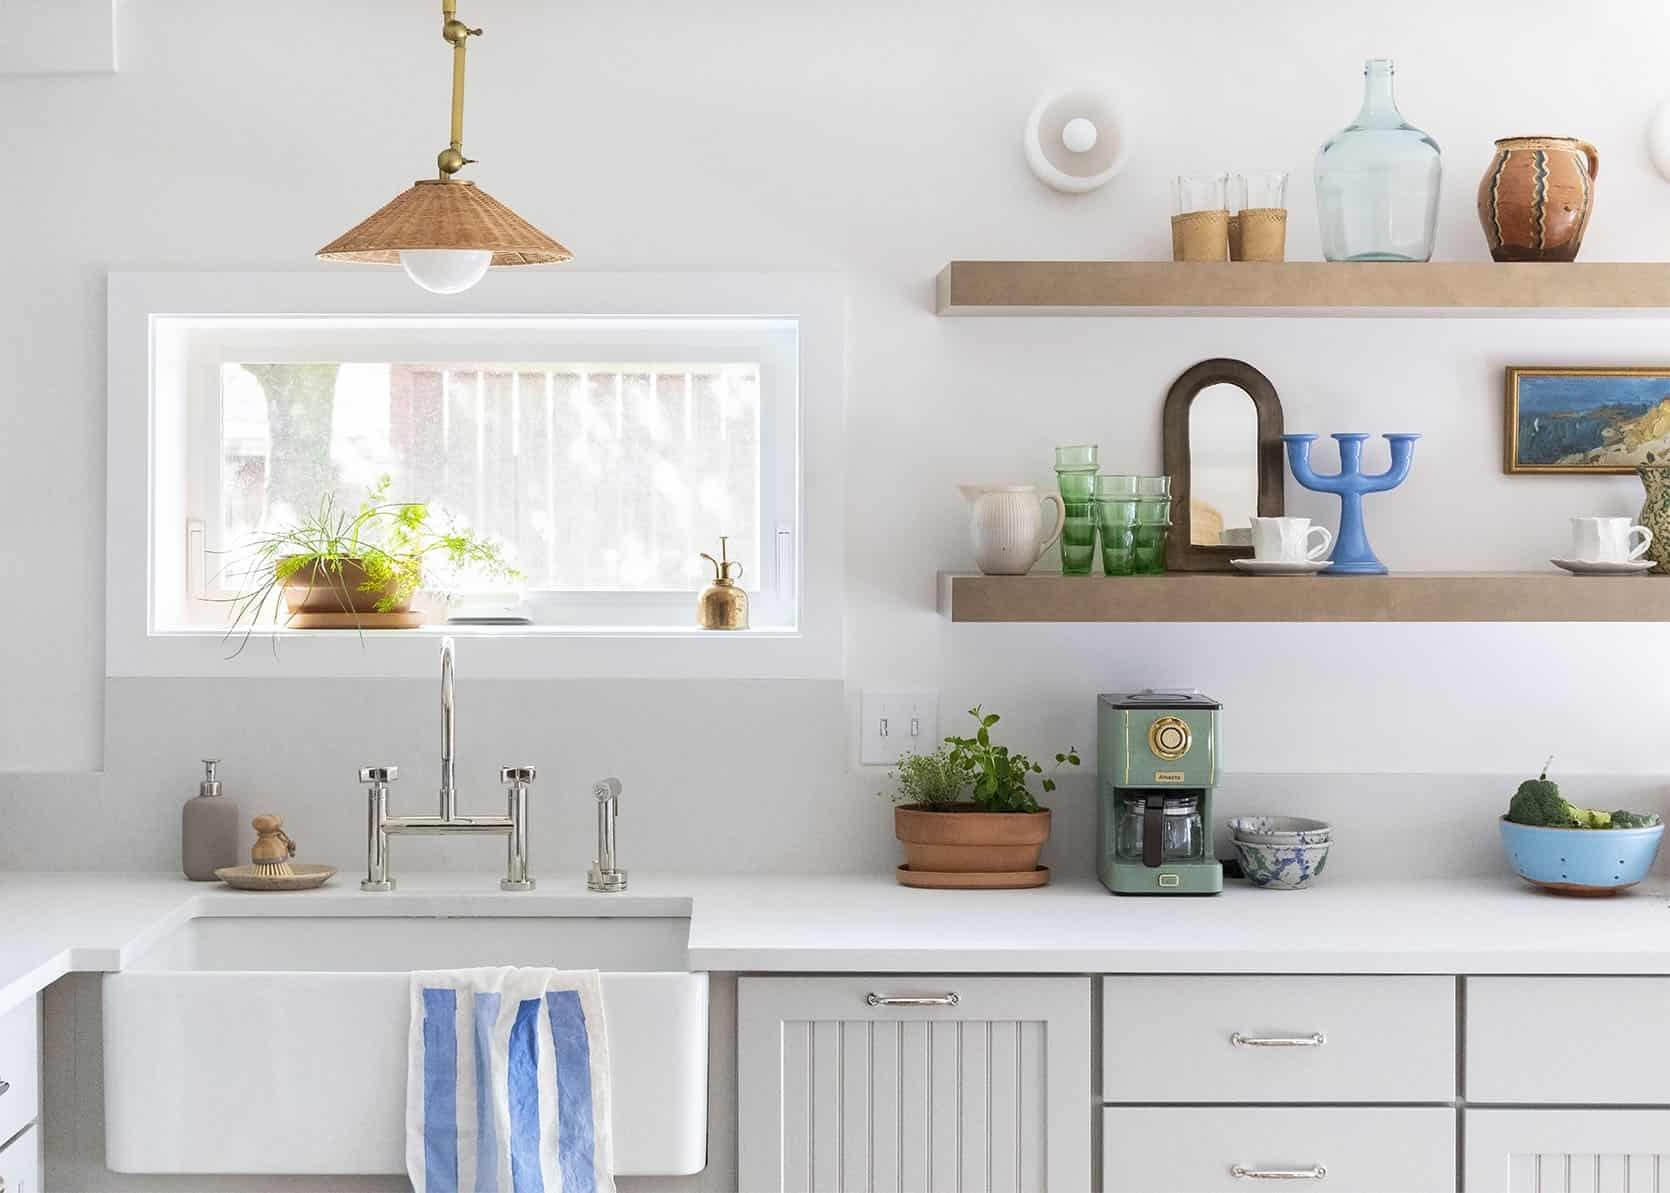 Coco Kelly's Basement Kitchen Reveal!! + A Case For That One Original Design Element You Hate Becoming Your Favorite